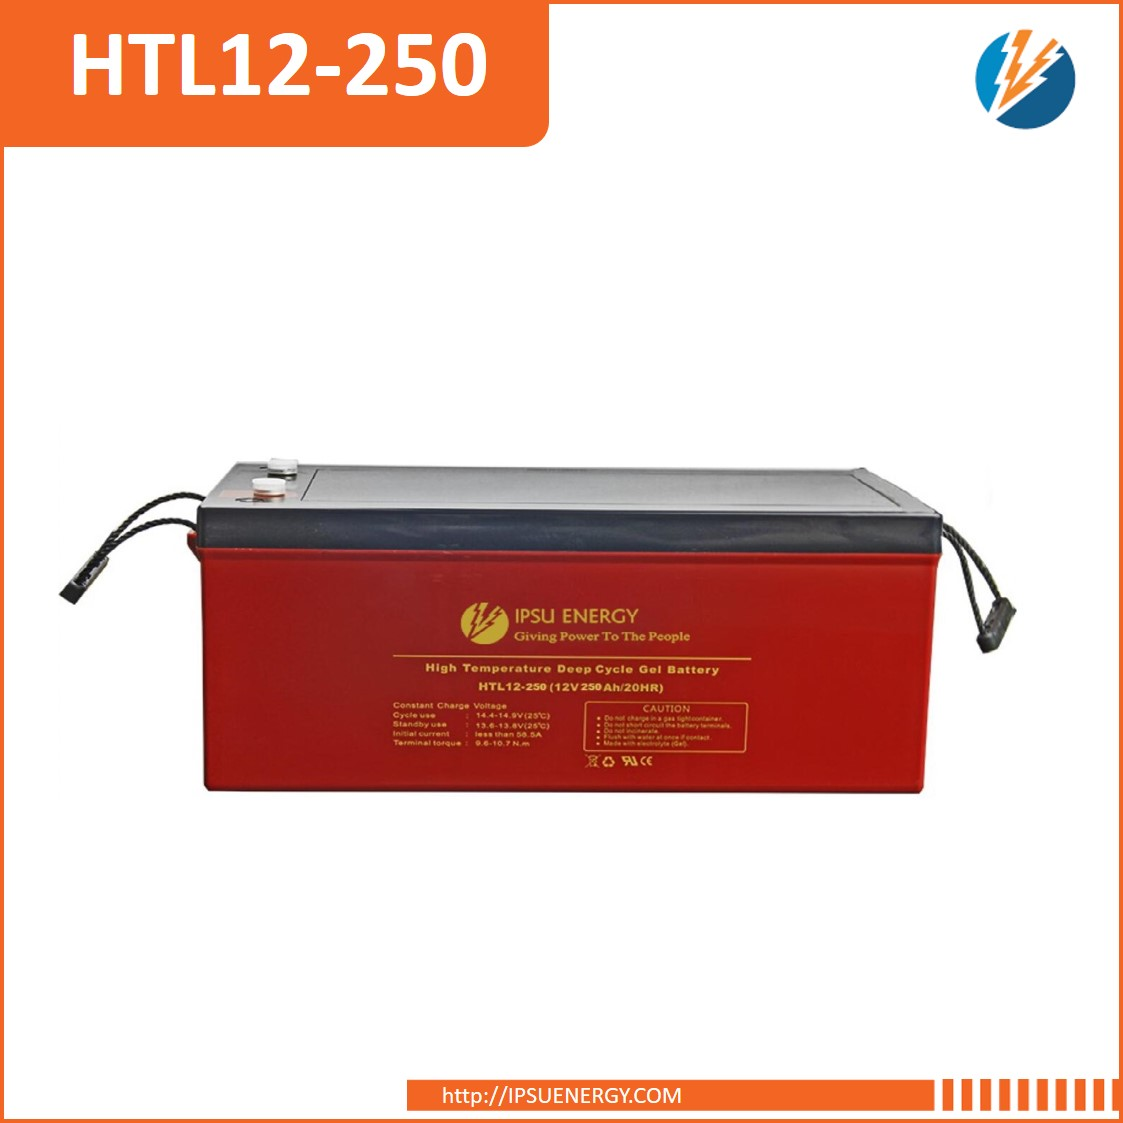 HTL12-250 PIC